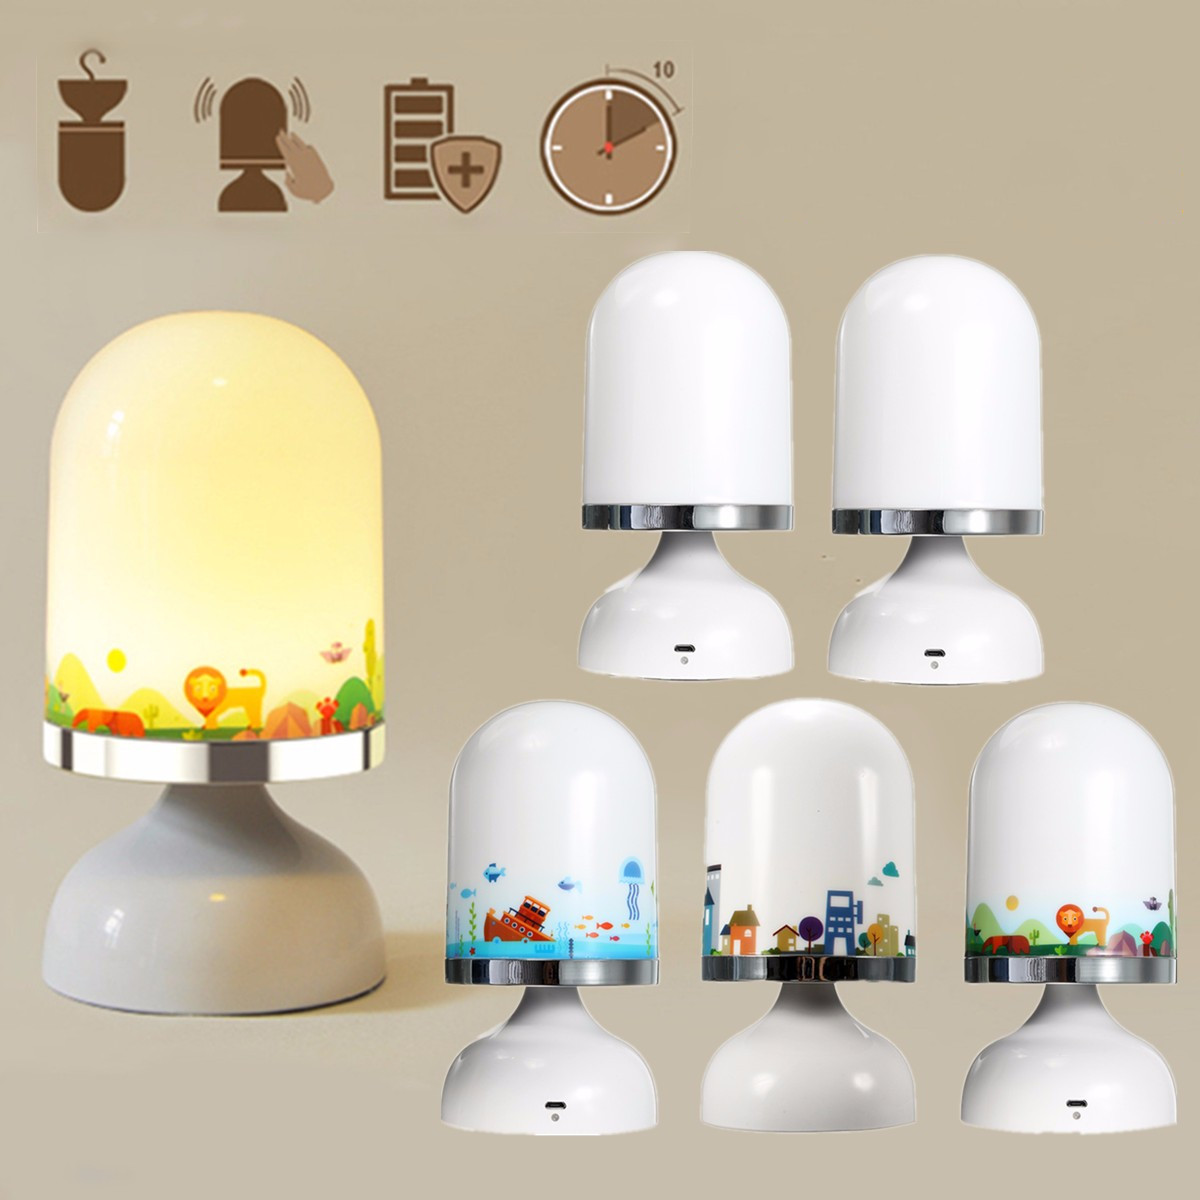 Rechargeable Night Lamp Portable Usb Rechargeable Led Night Light Hanging Stand